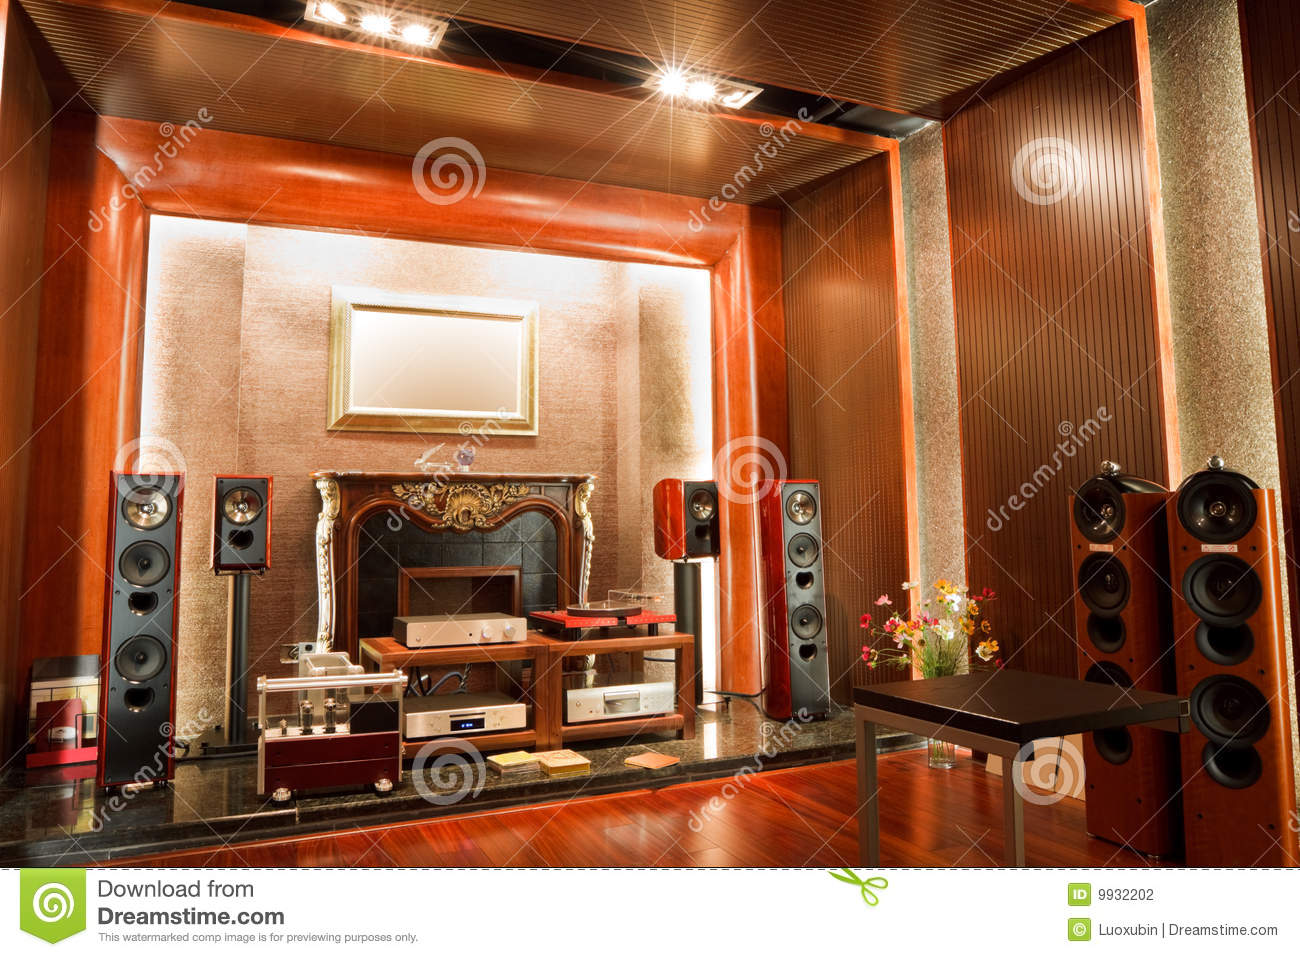 E3 83 A2 E3 83 80 E3 83 B3 E3 81 AA E5 AE B6 954944927030 together with Summer House Architecture Design moreover Small Basement Ideas Space Saving Ideas moreover 3d House Planner likewise Royalty Free Stock Photo Cartoon Animal Doctor Image23113425. on modern architecture bedroom